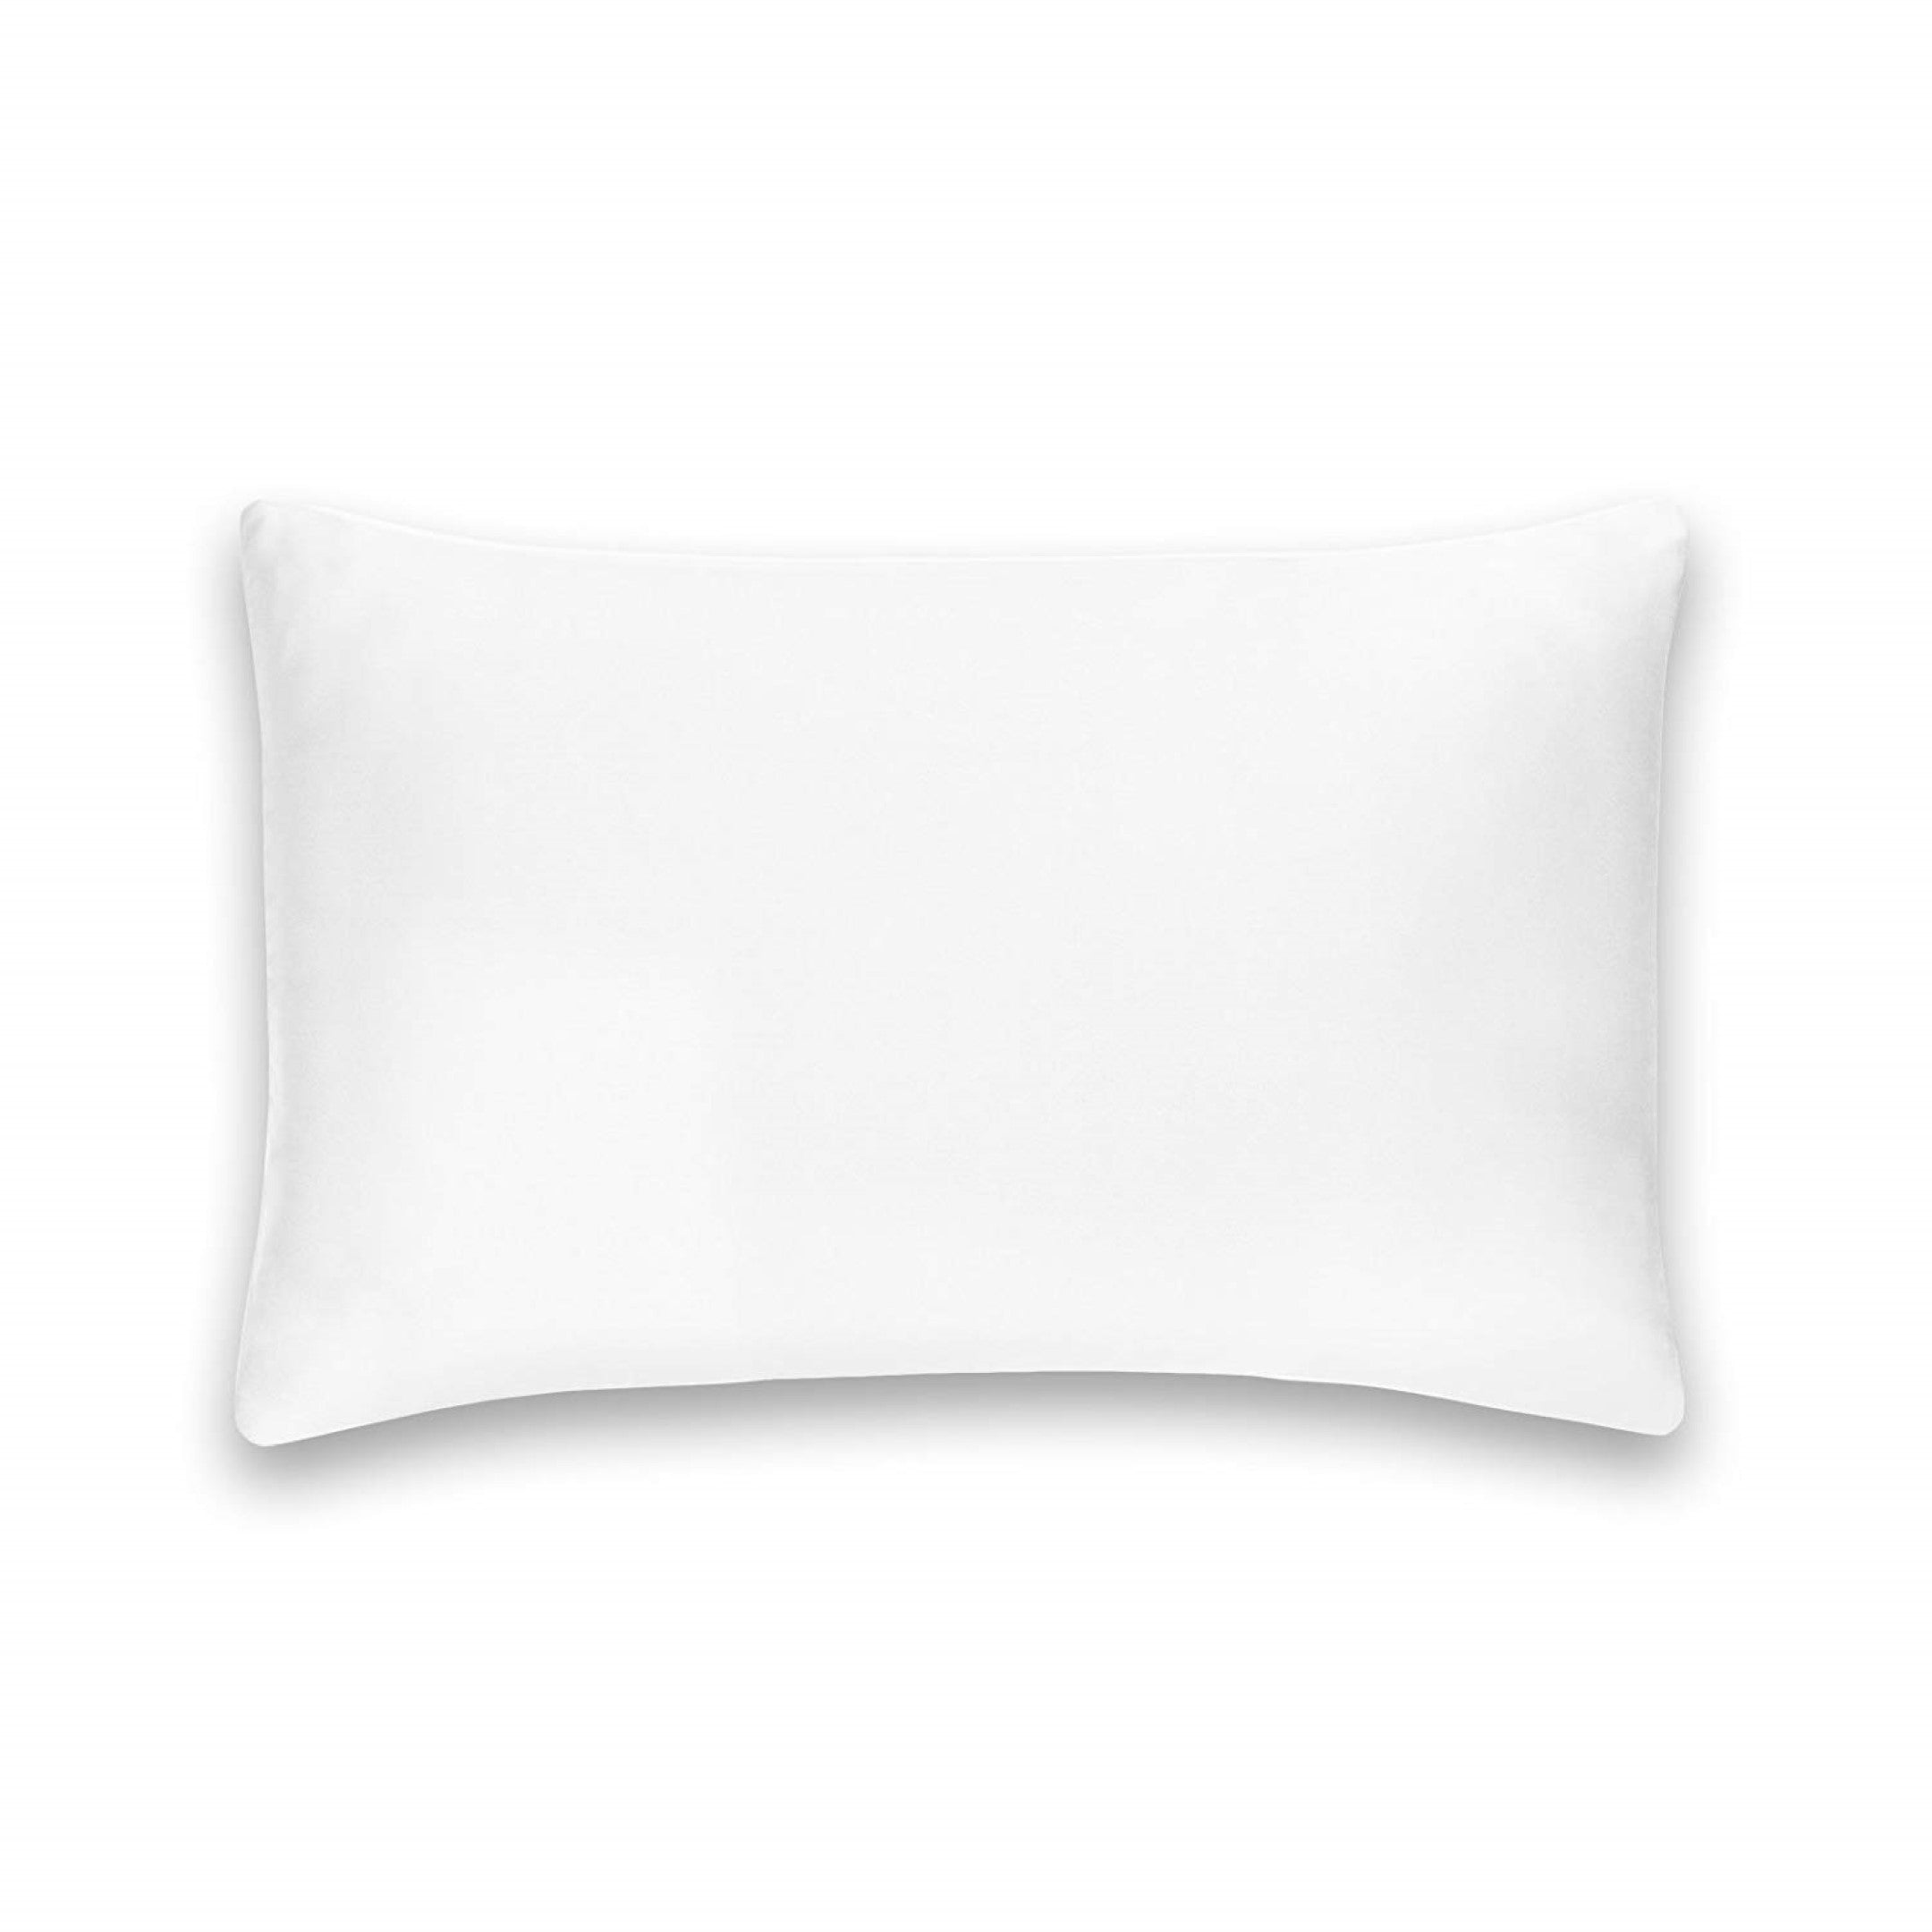 mē Glow Beauty Boosting Pillowcase - For Fine Lines Reduction w/ Anti-Aging Copper Technology